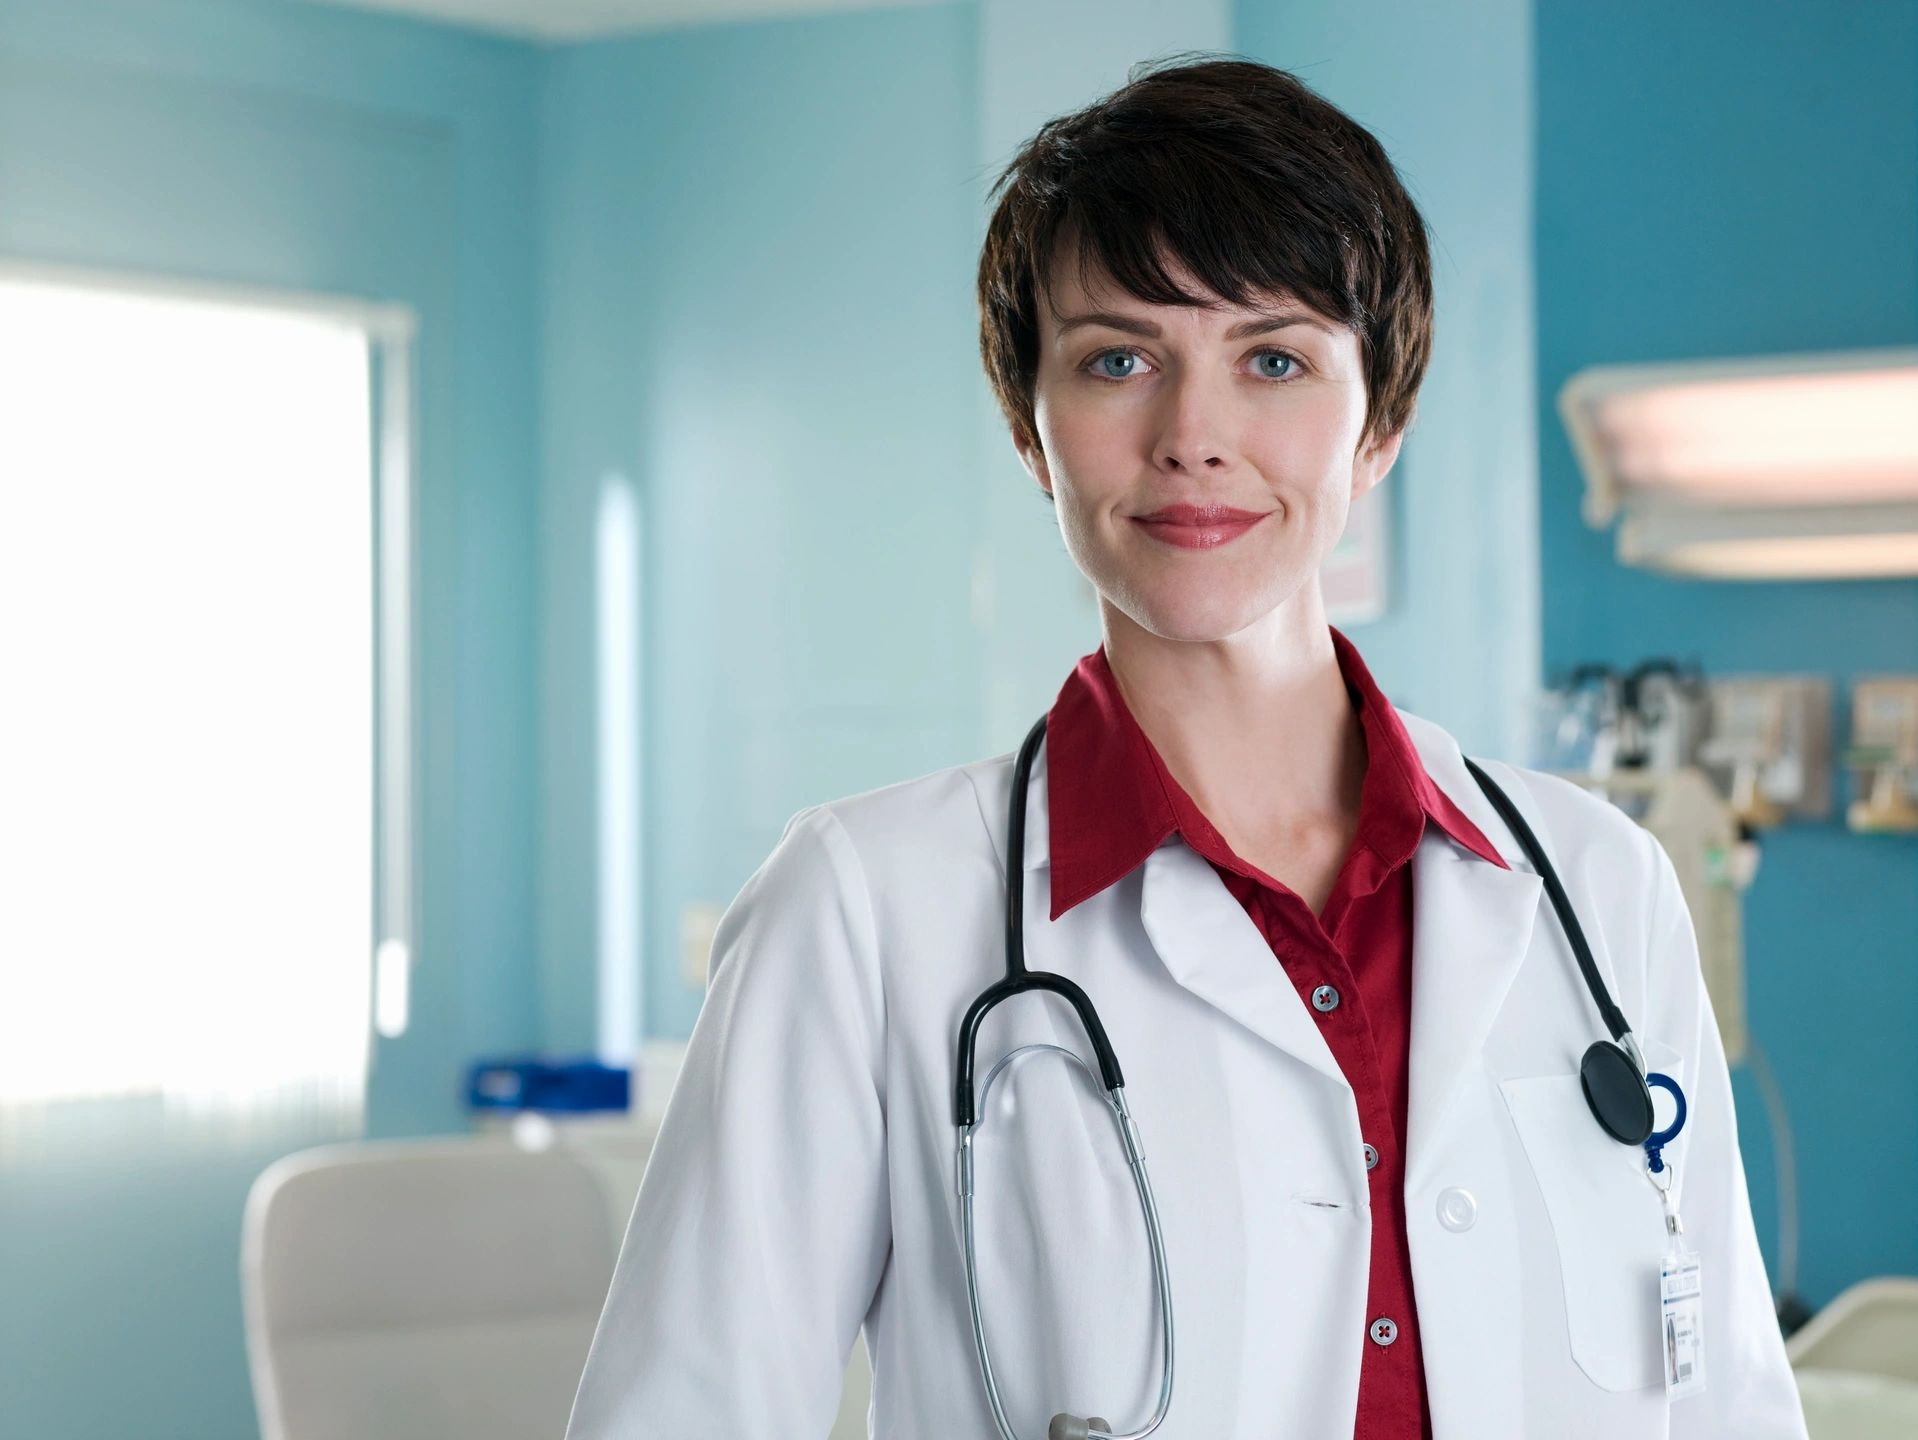 Female doctor with white coat and stethoscope